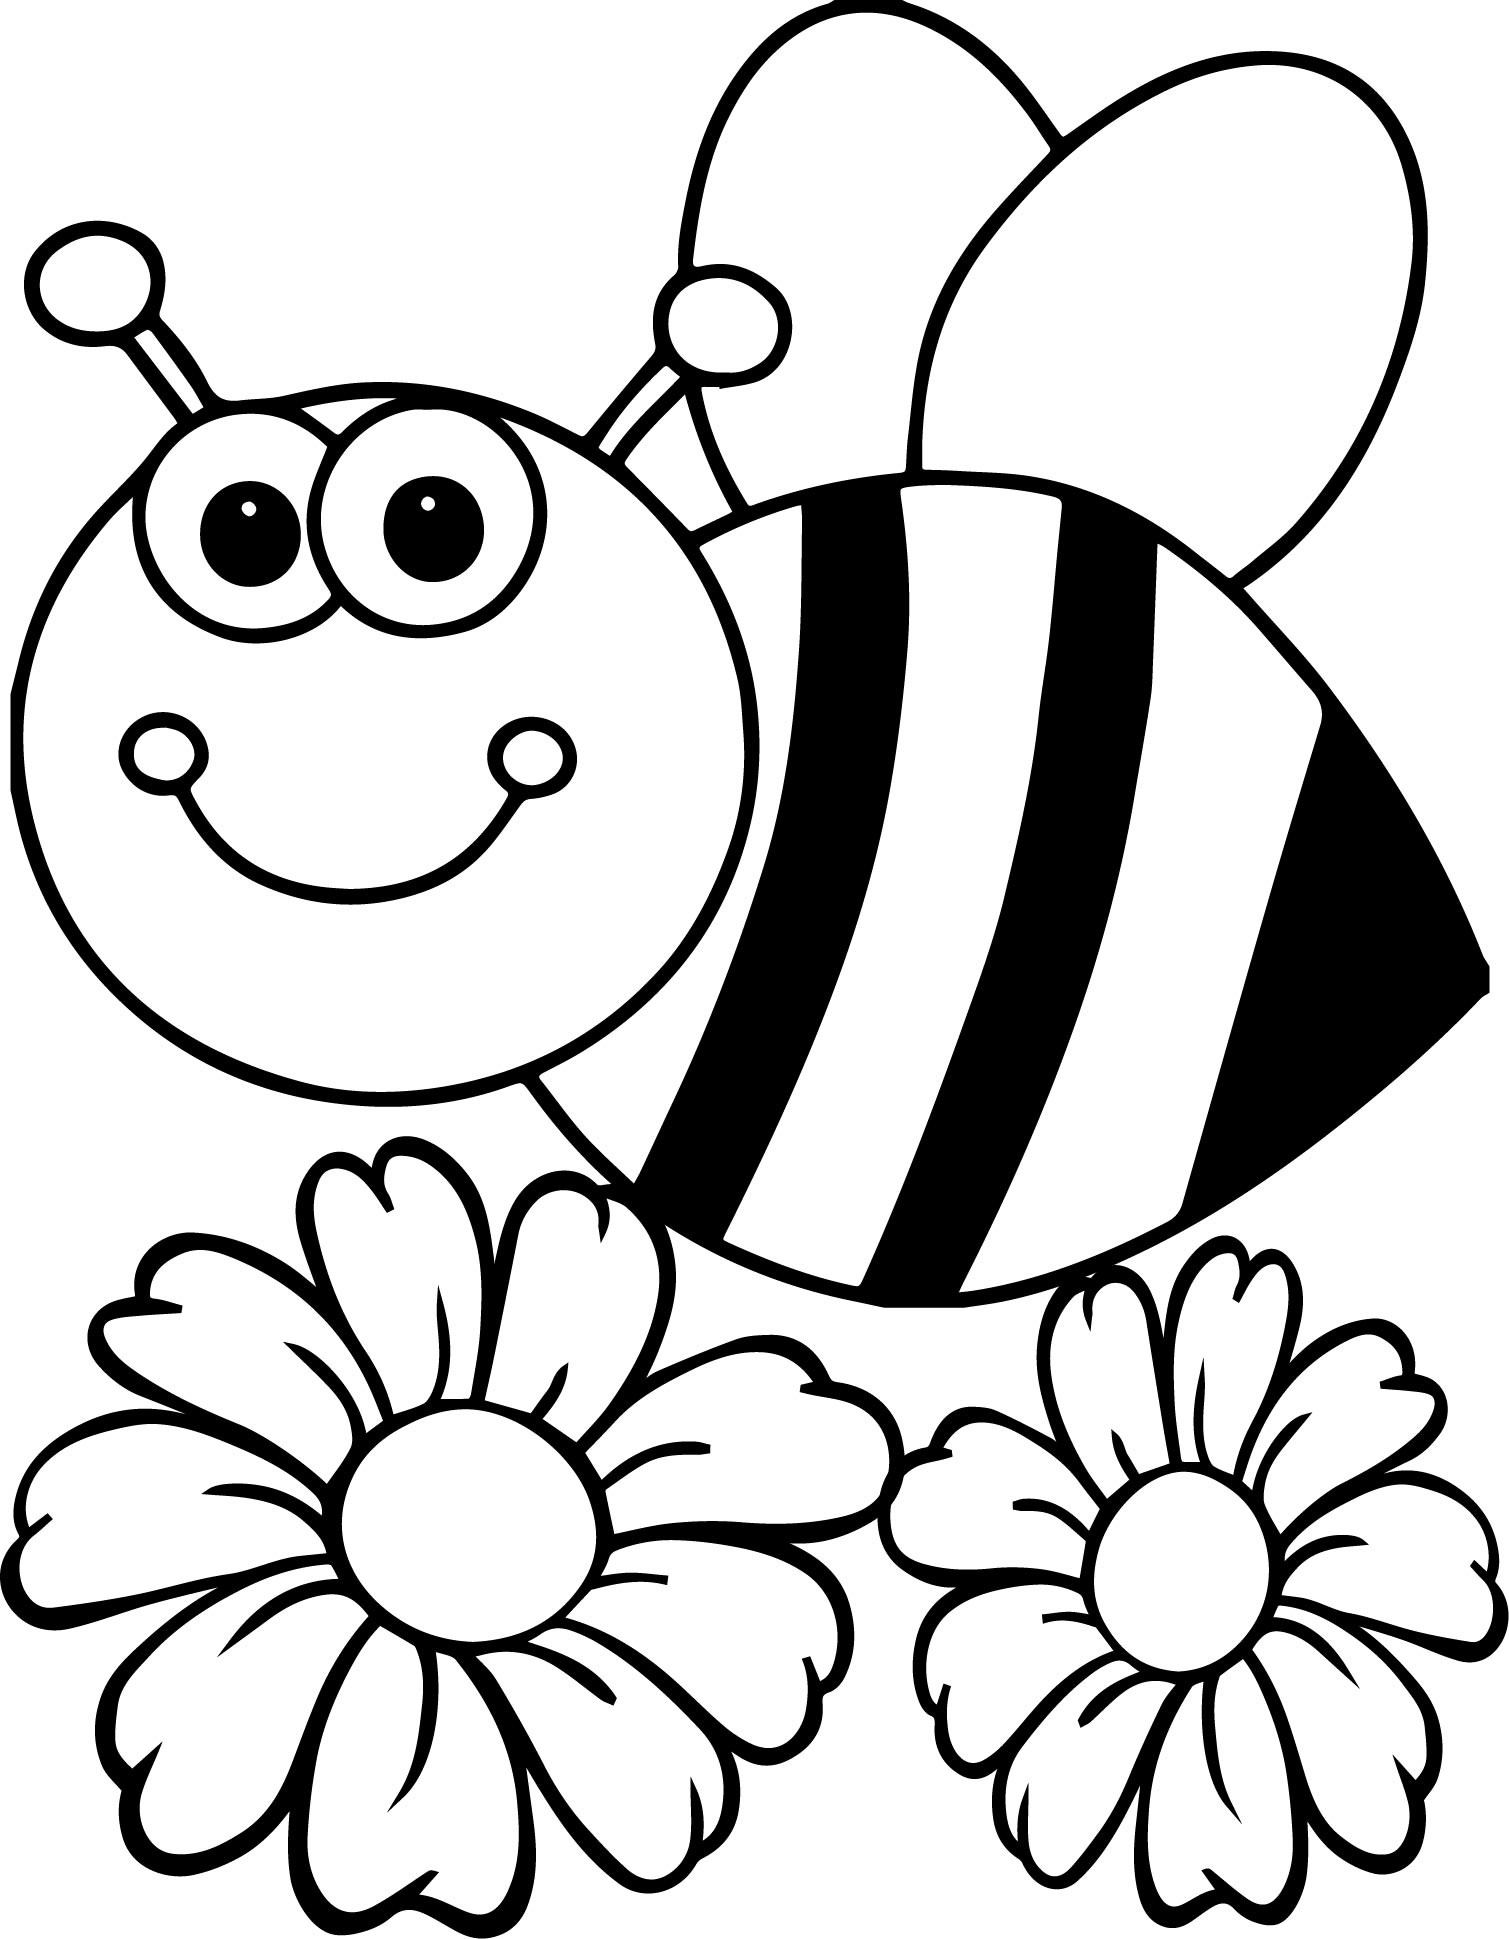 Bee And Flower Drawing At Getdrawings